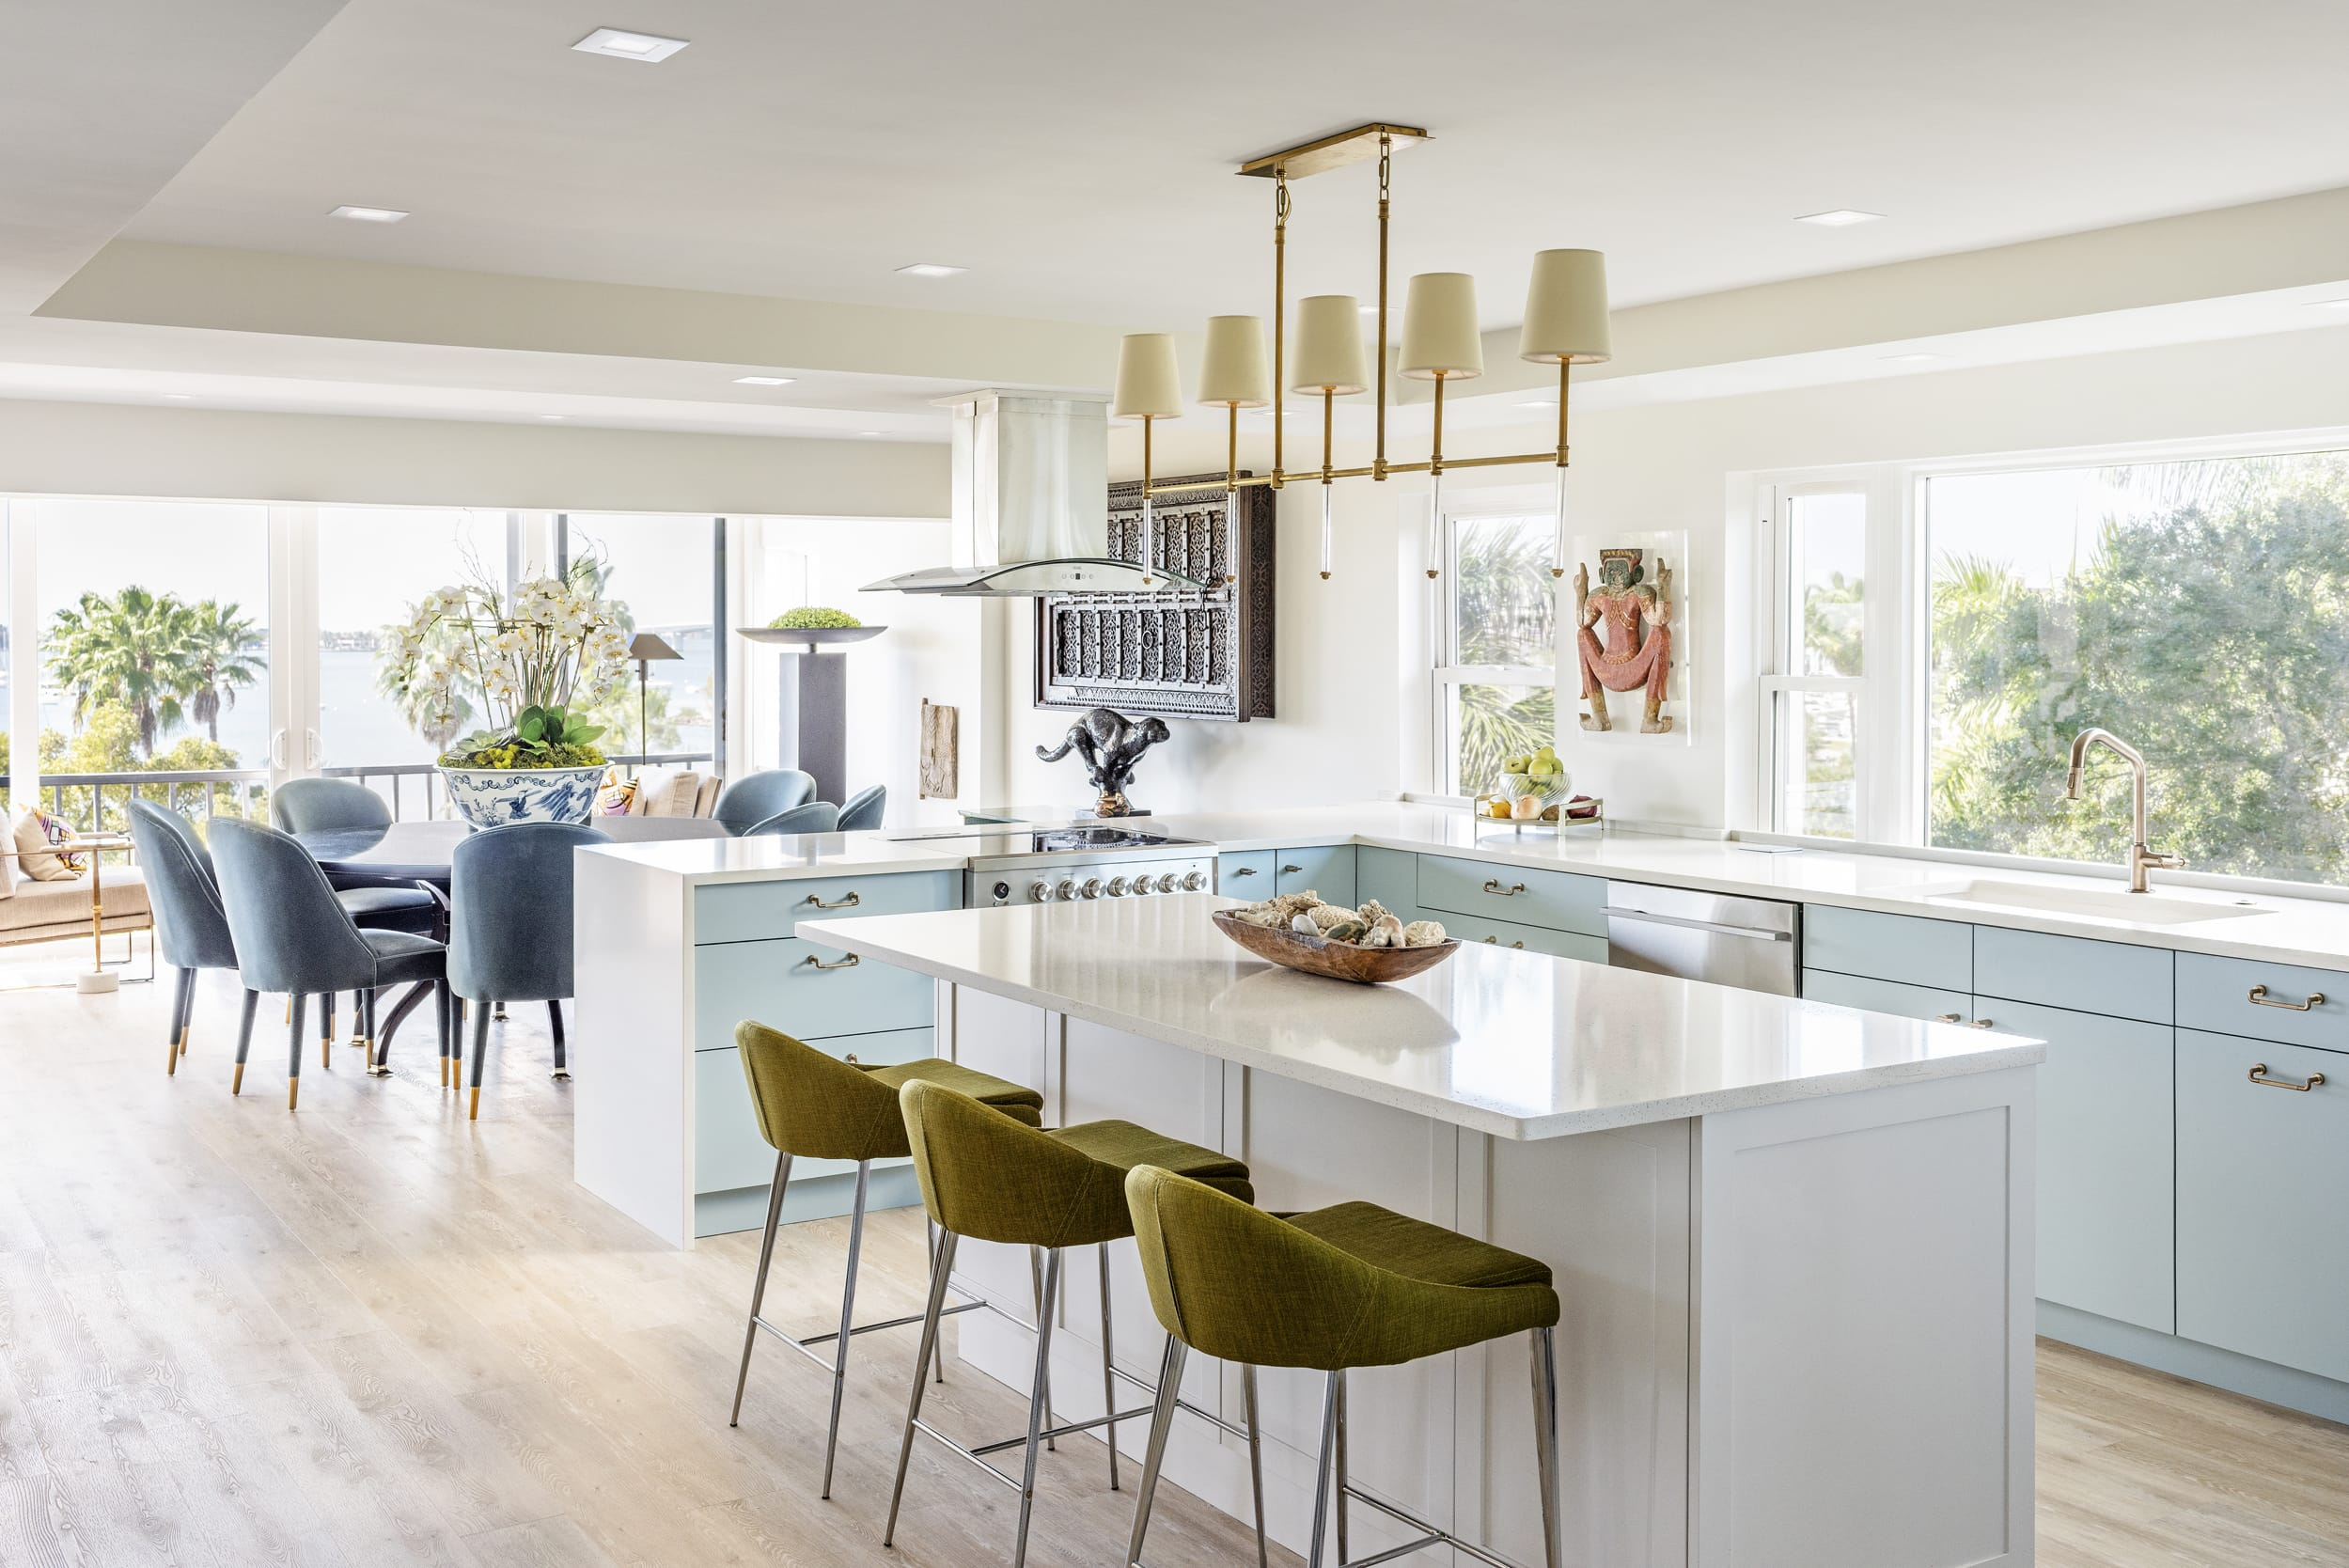 Open Plan Kitchen Light Blue Cabinets Pea Green High Chairs Blonde Wood Floors